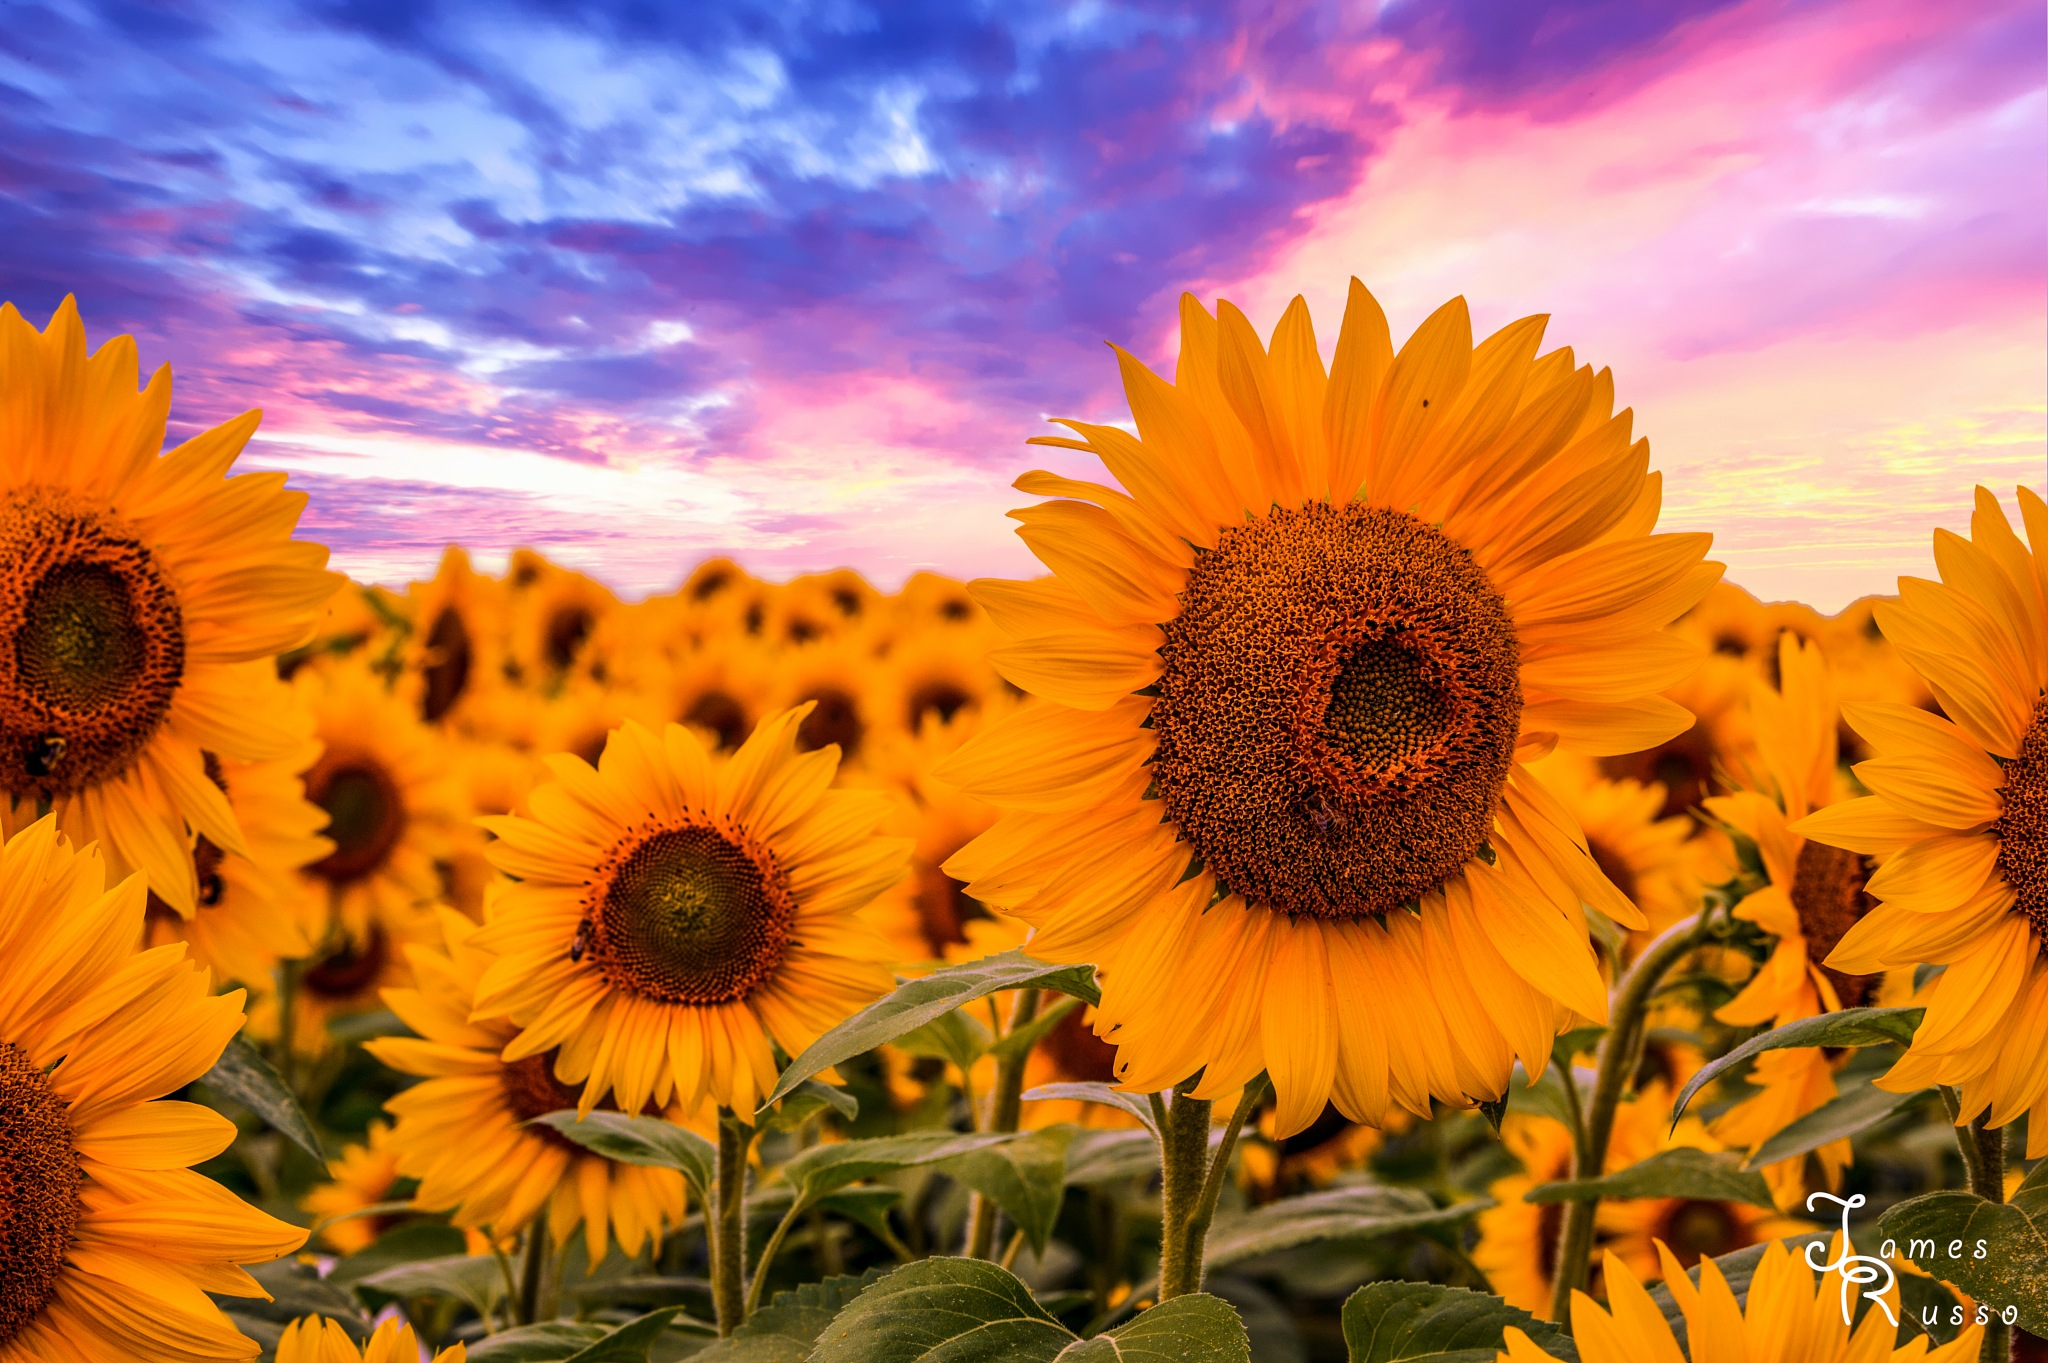 Sun Kissed Sunflowers by James Russo